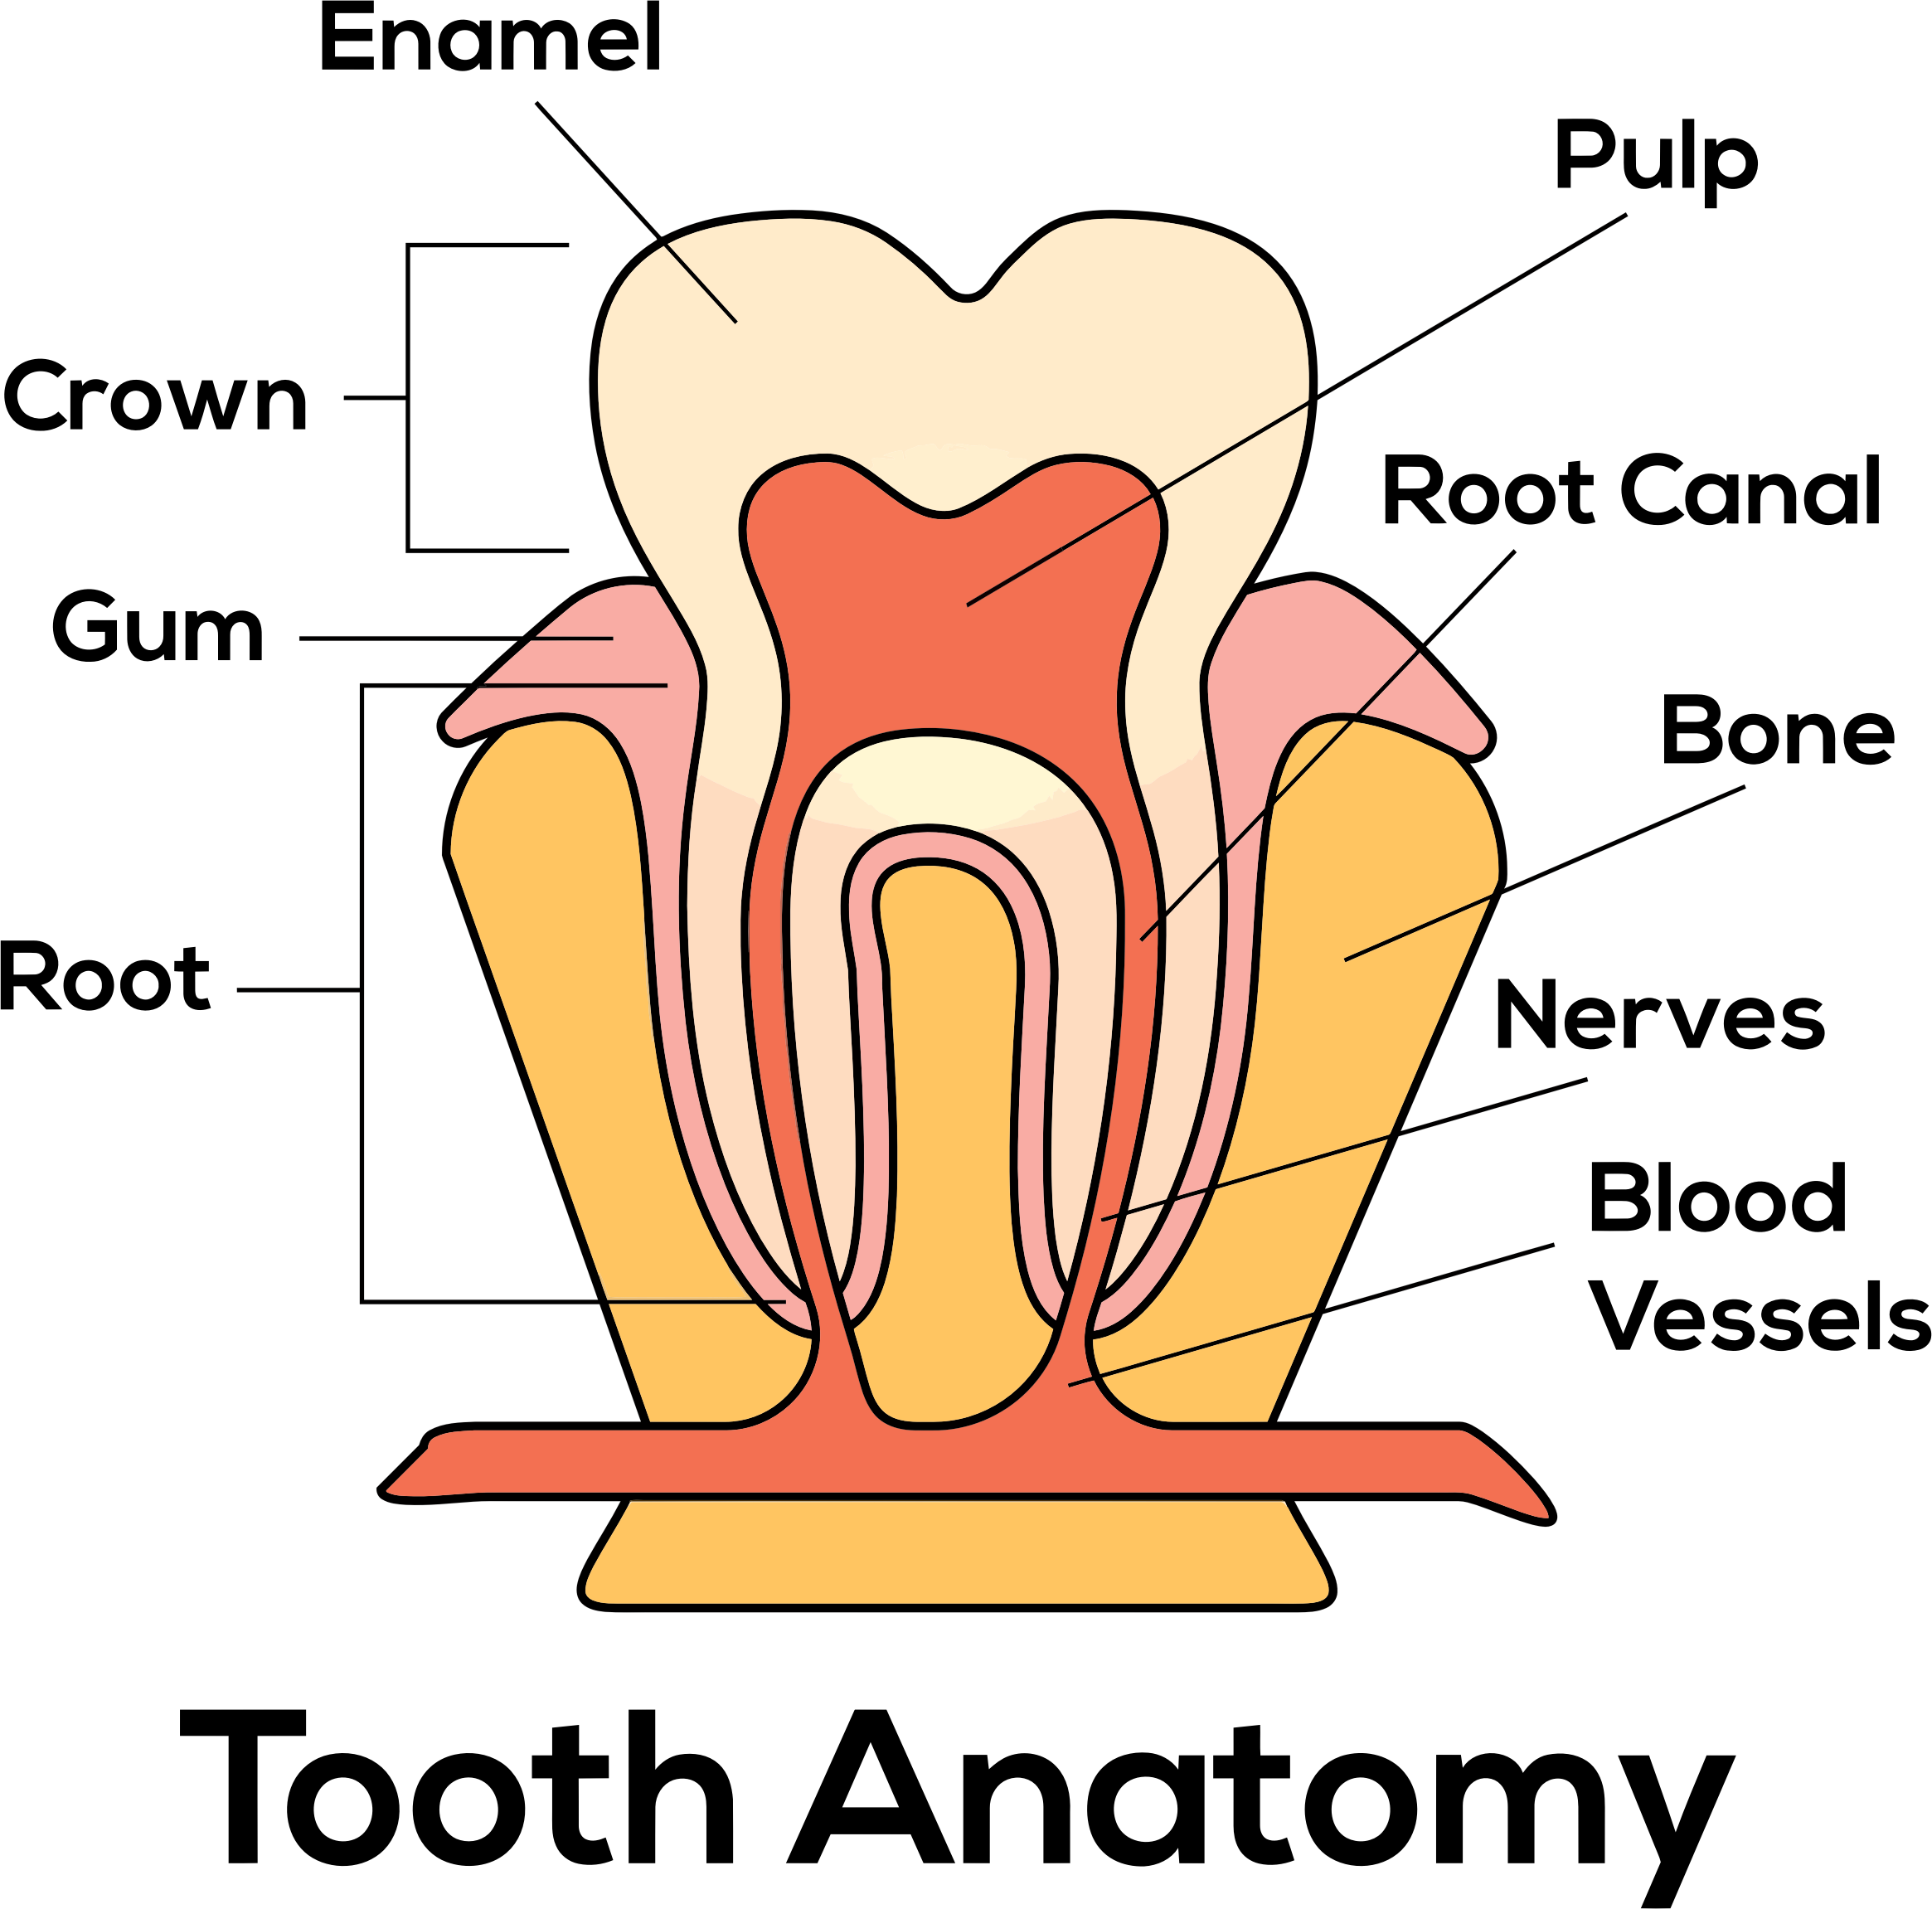 Clipart - Tooth Anatomy By Paul Brennan